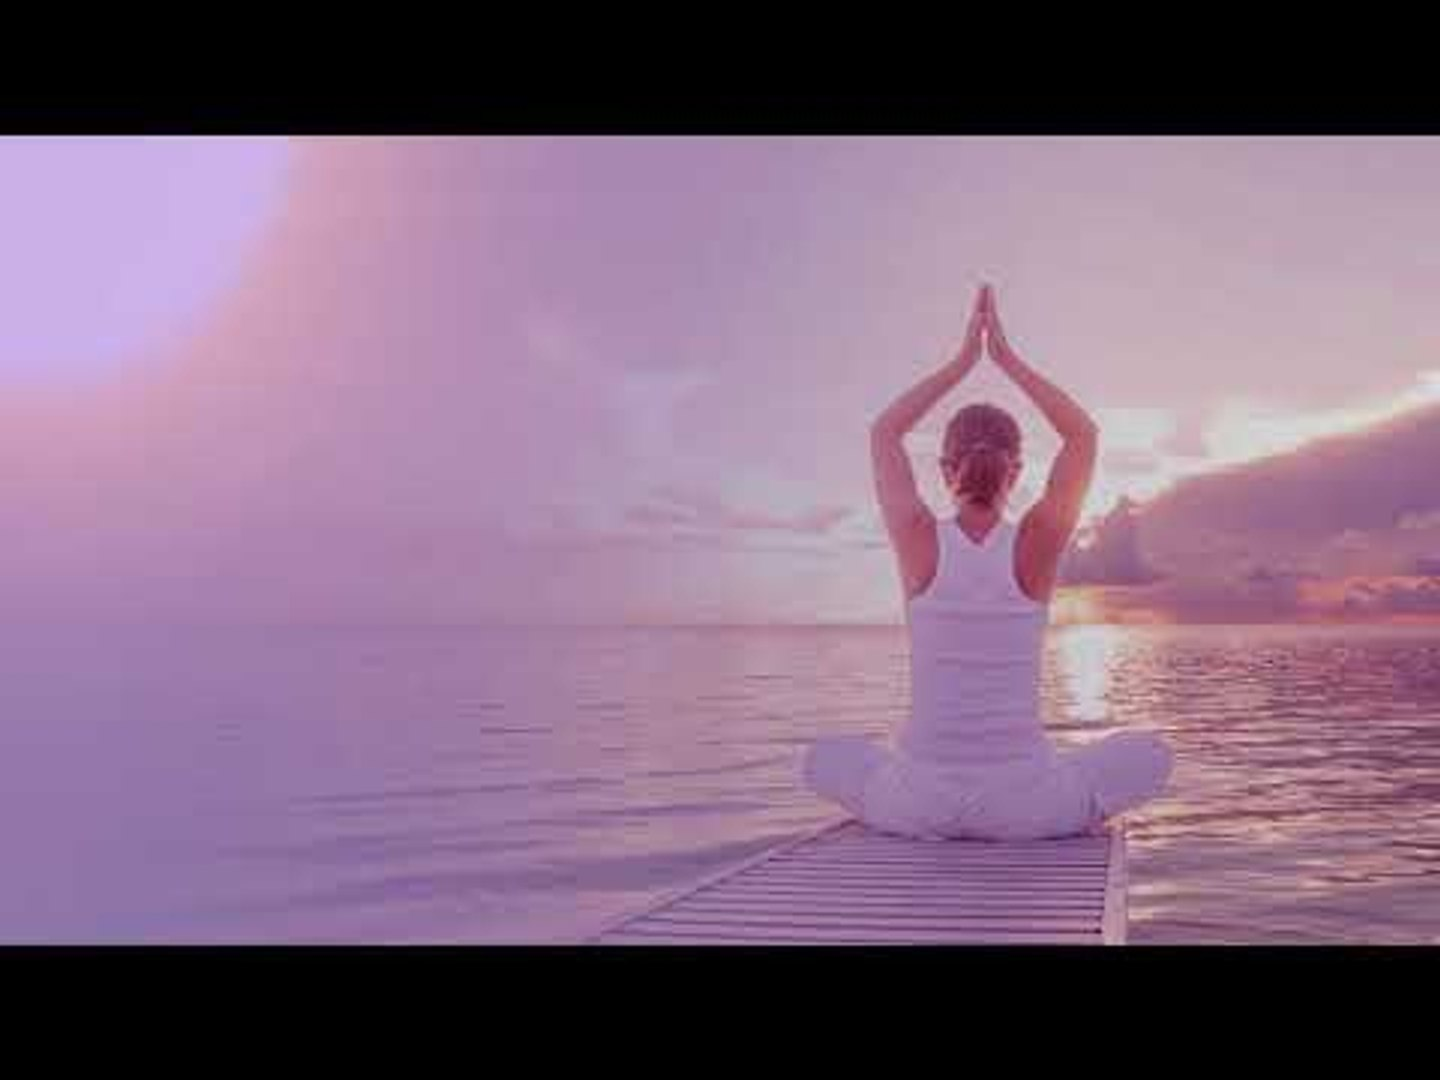 Yoga Meditation Music: Flute Music for Yoga, Soothing Music, Calming Music, Soft Music